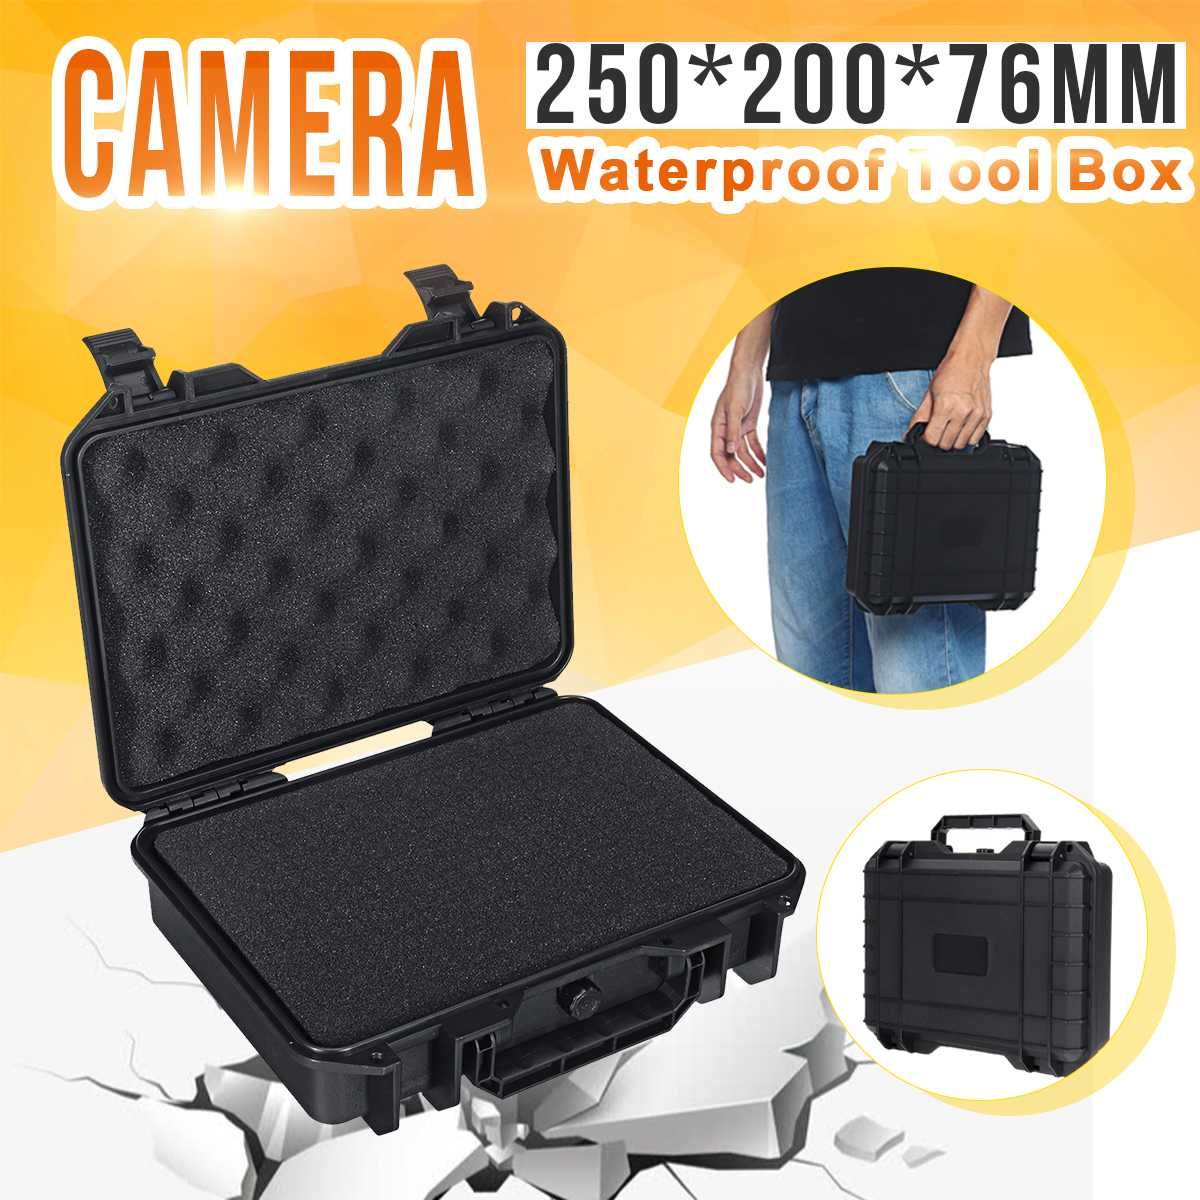 MG6235 Protective Safety Instrument Tool Box Waterproof Shockproof Storage Toolbox Sealed Tool Case Impact Resistant Suitcase